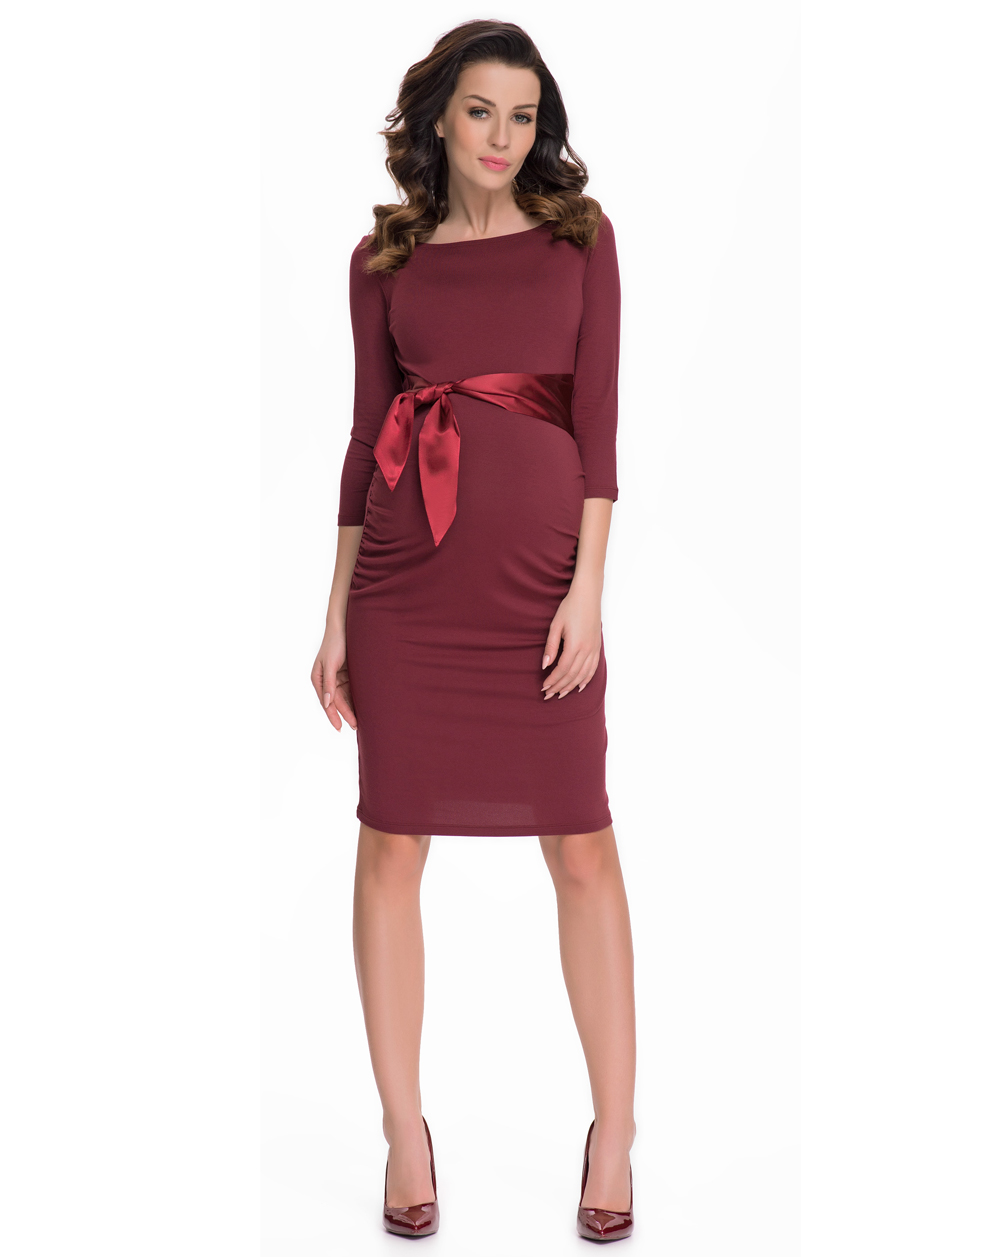 Maternity clothes rental affordable pregnancy wear dress clothes ombrellifo Gallery